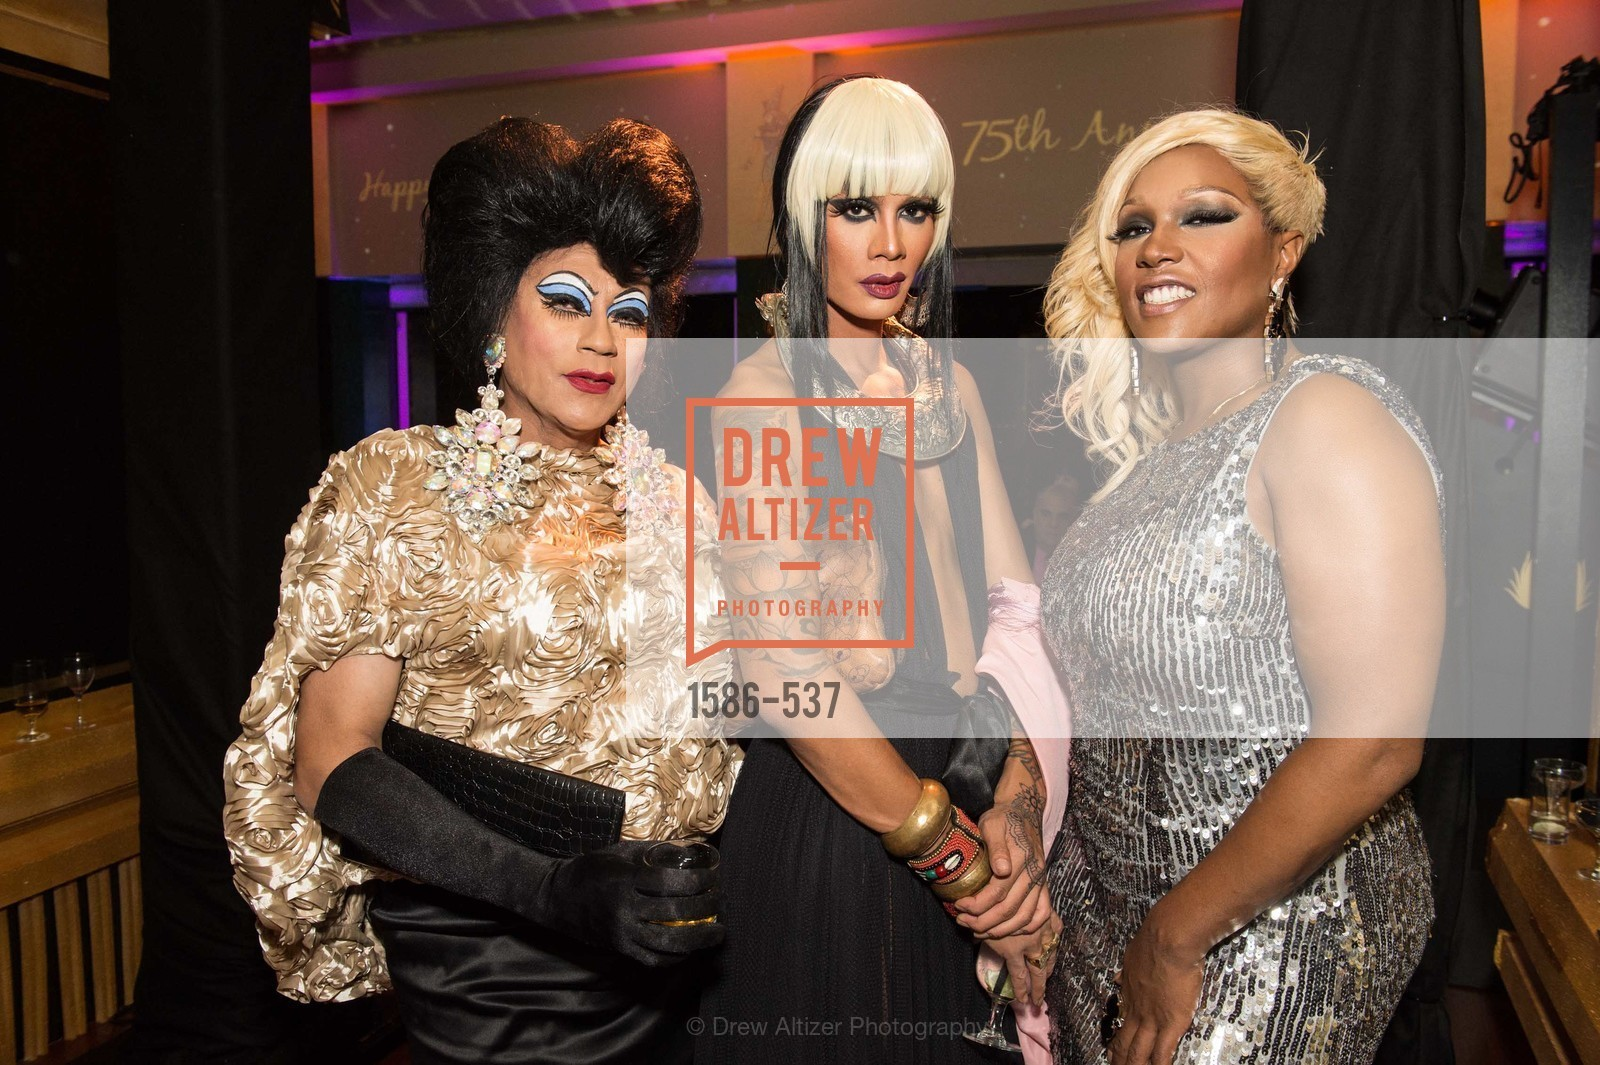 Juanita More, Raja, Sloan, TOP OF THE MARK'S 75TH Anniversary Party, US, November 7th, 2014,Drew Altizer, Drew Altizer Photography, full-service event agency, private events, San Francisco photographer, photographer California